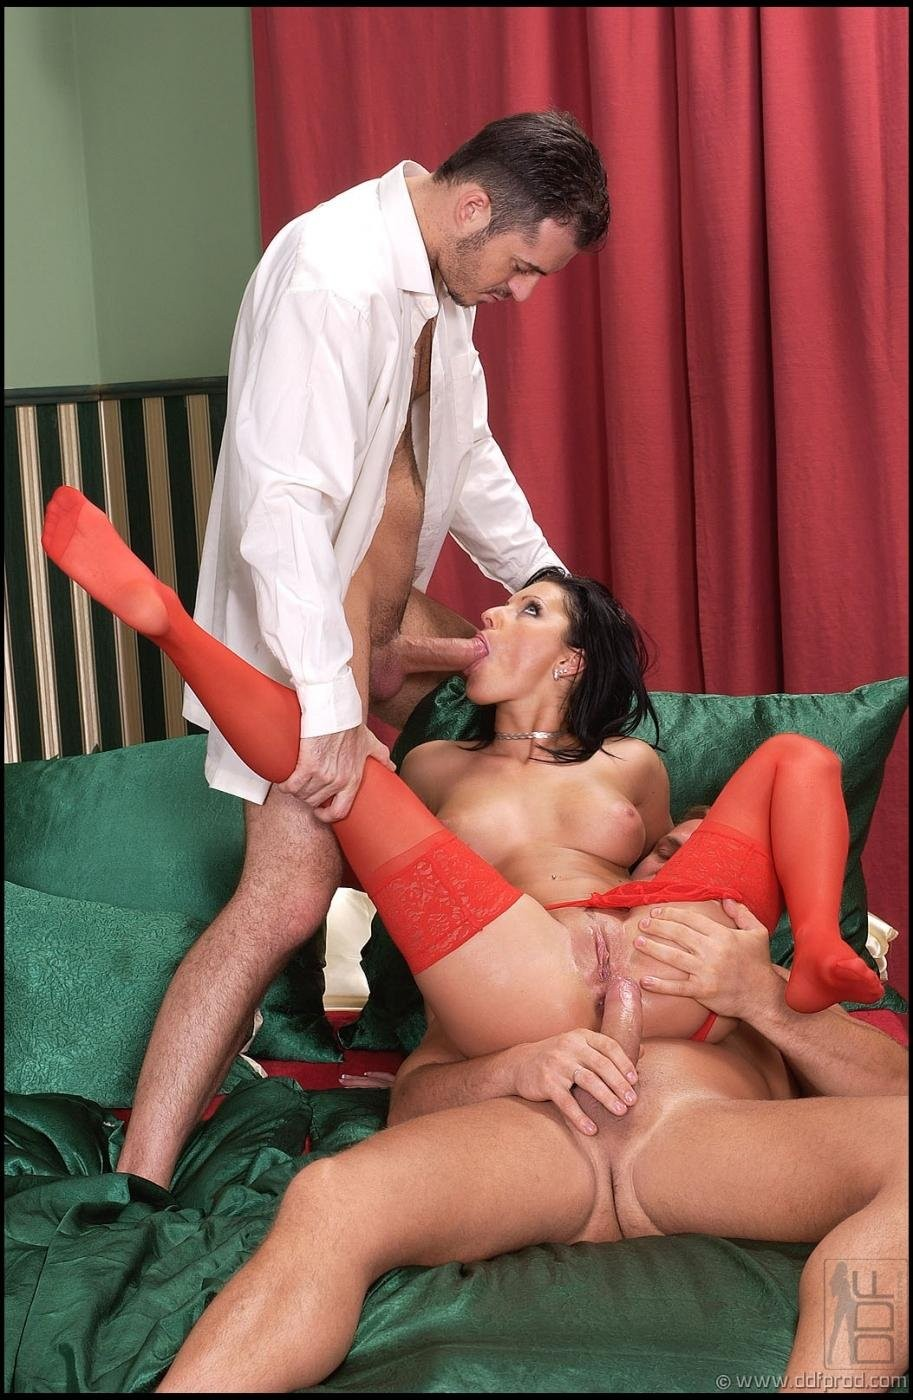 honour may sex – Anal